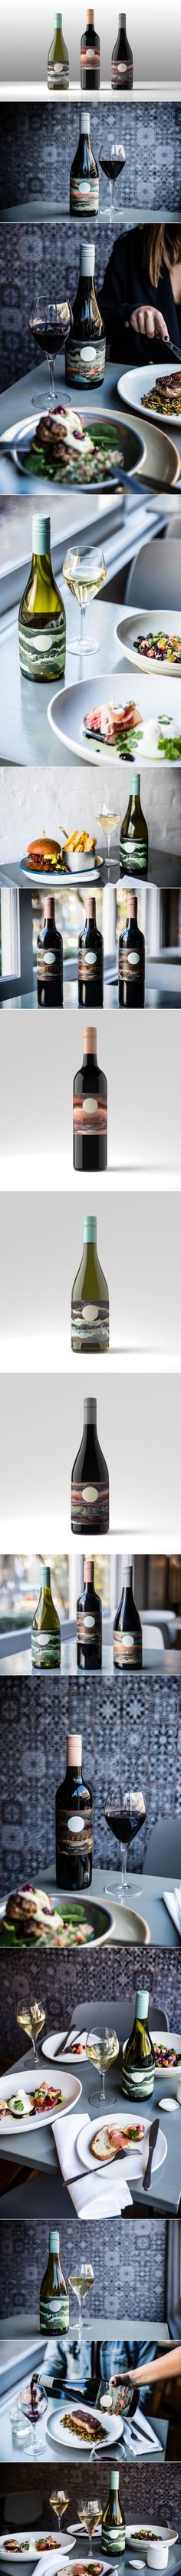 Wine Labels Created from Algorithms: Data and Design Go Hand in Hand for PREECE — The Dieline | Packaging & Branding Design & Innovation News